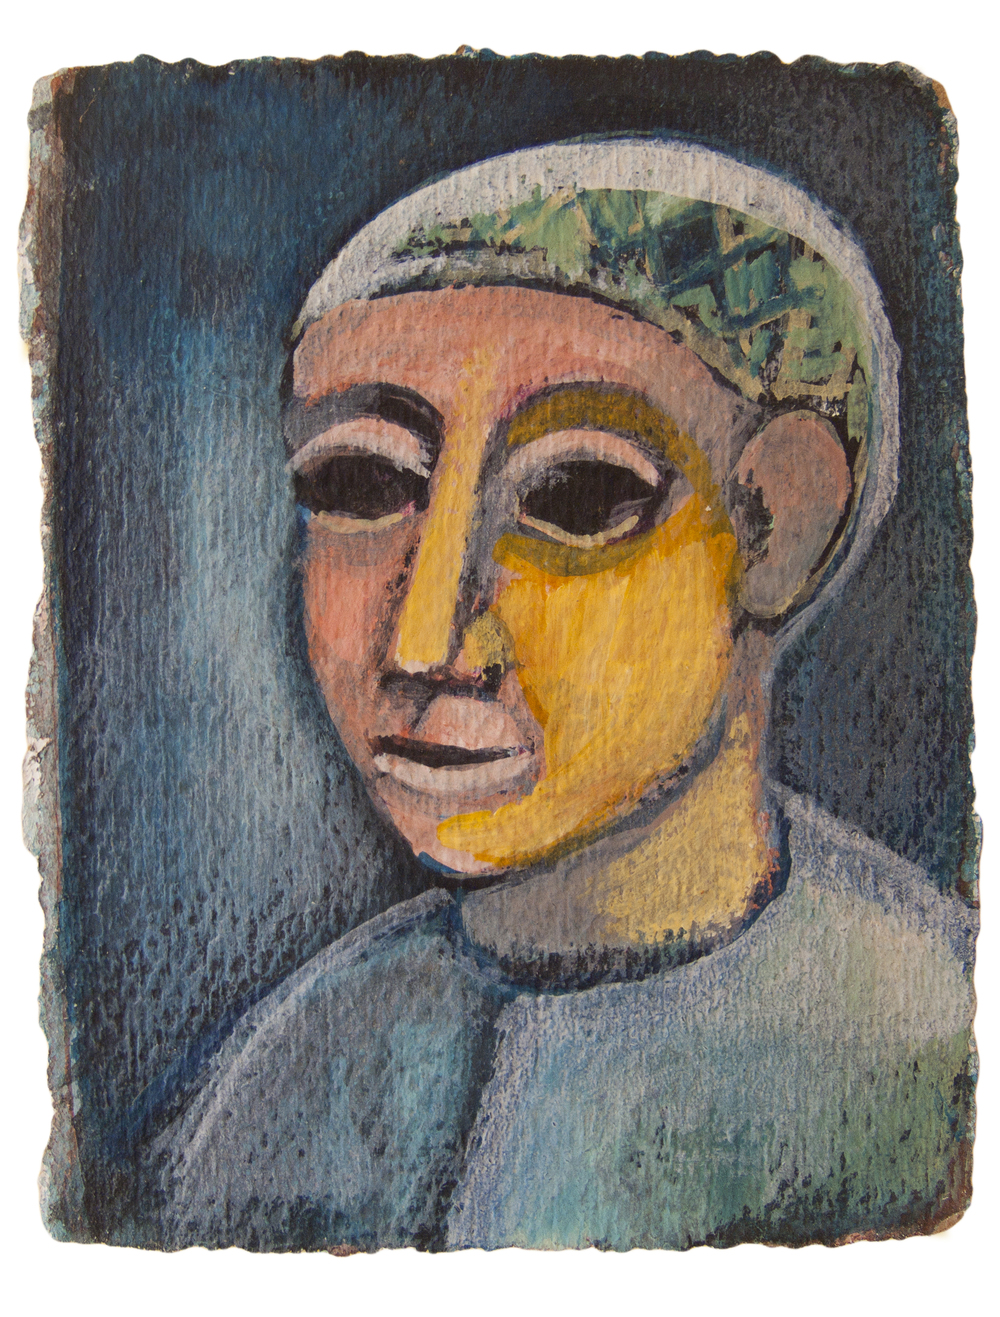 Untitled (Head of a Boy)